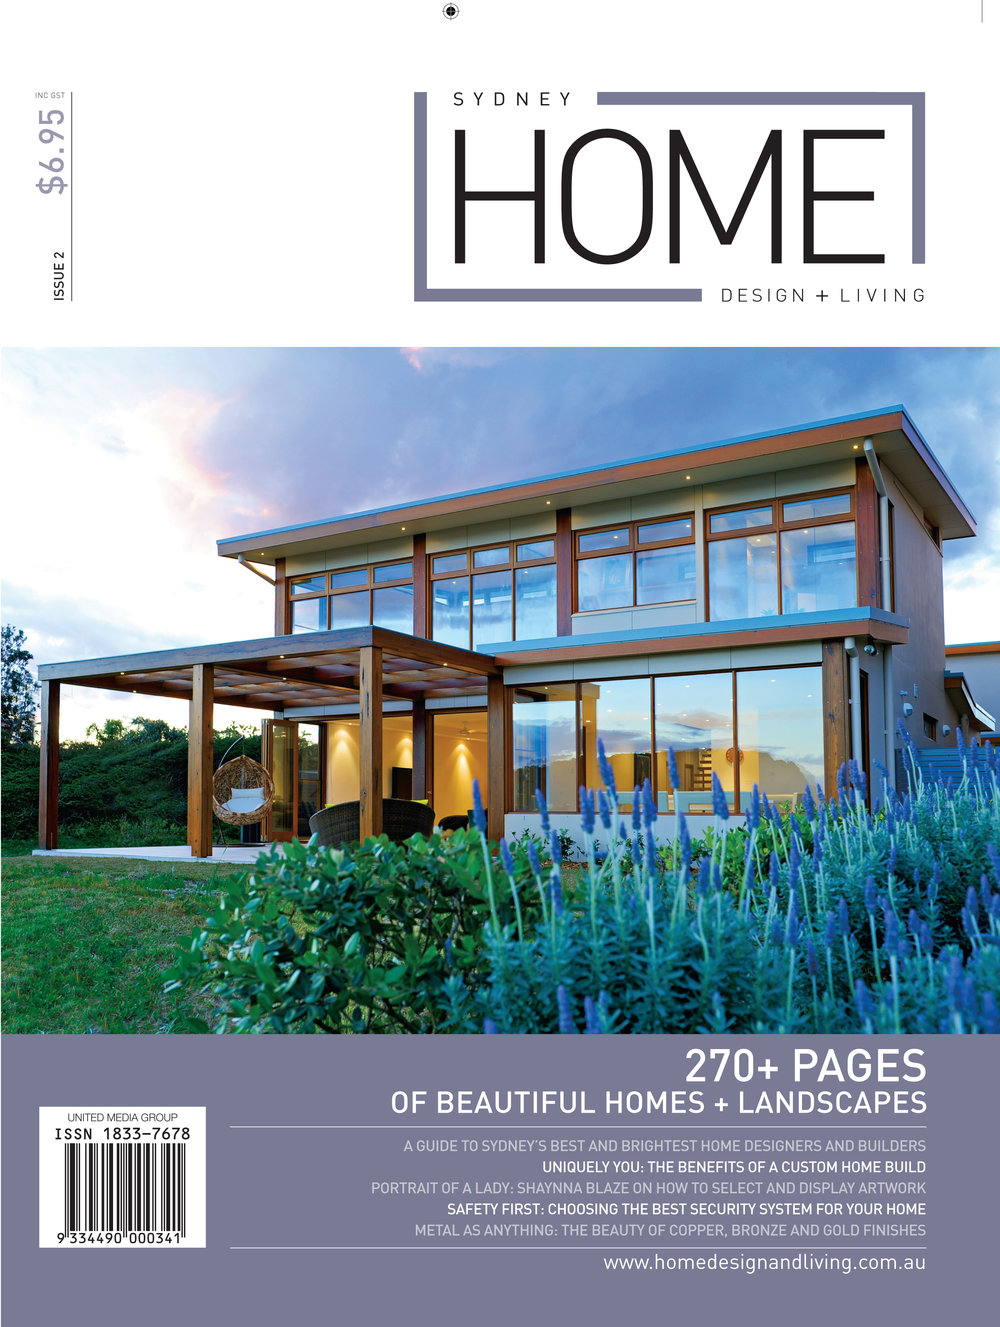 Sydney Home Design and Living Magazine featuring Hemp Gallery